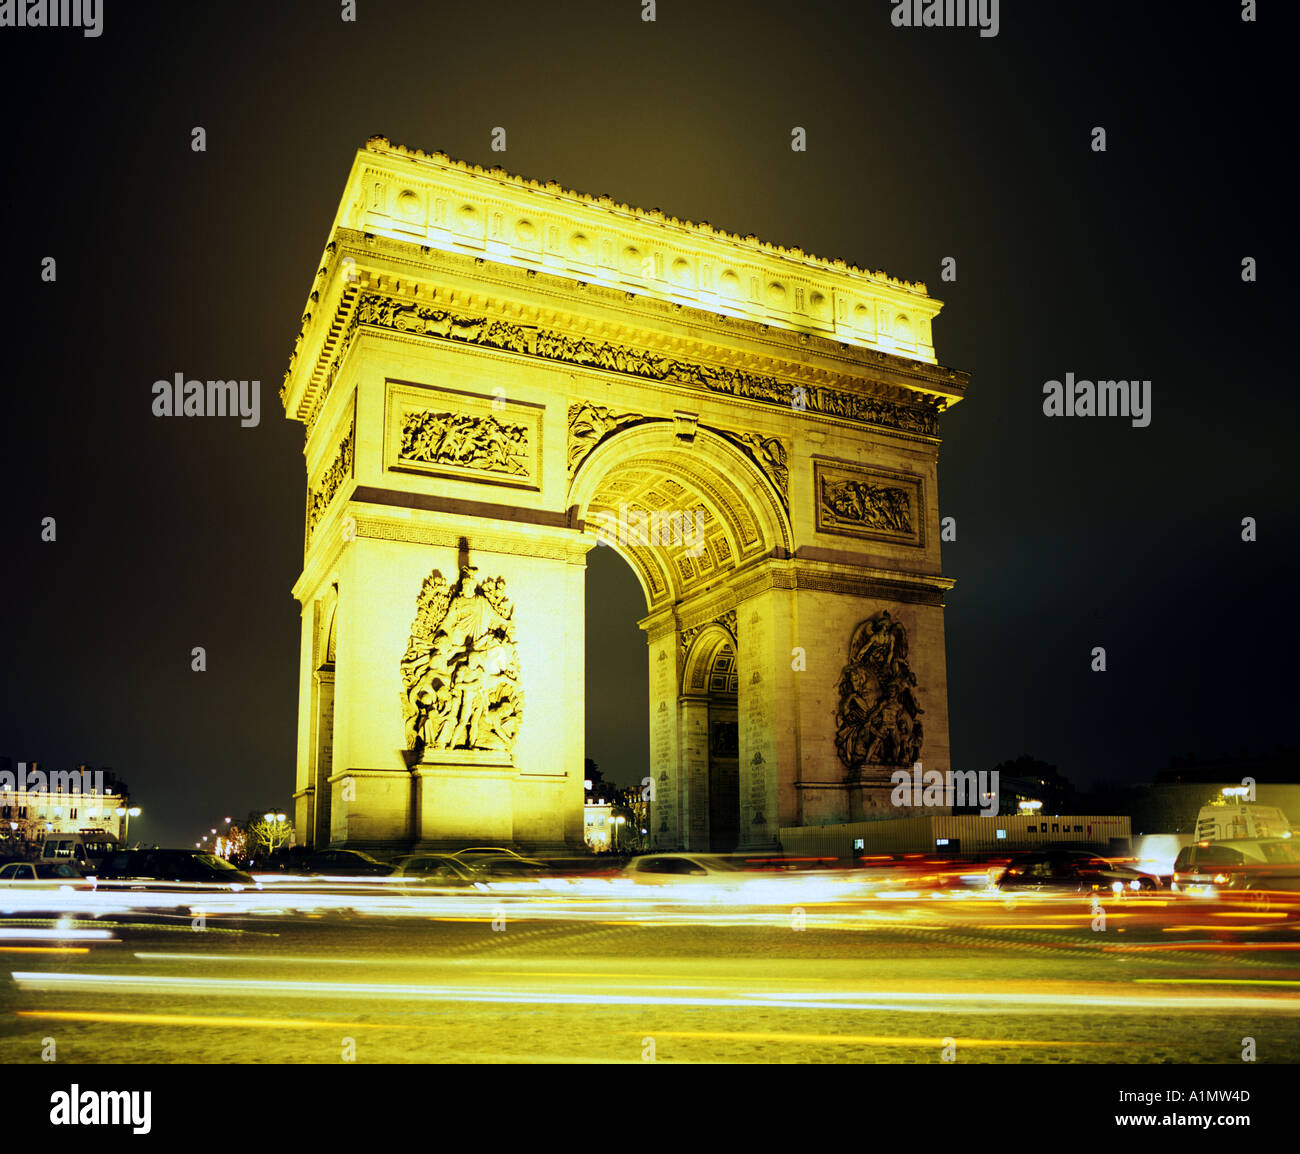 A night view of the Arc de Triomphe in Paris France - Stock Image